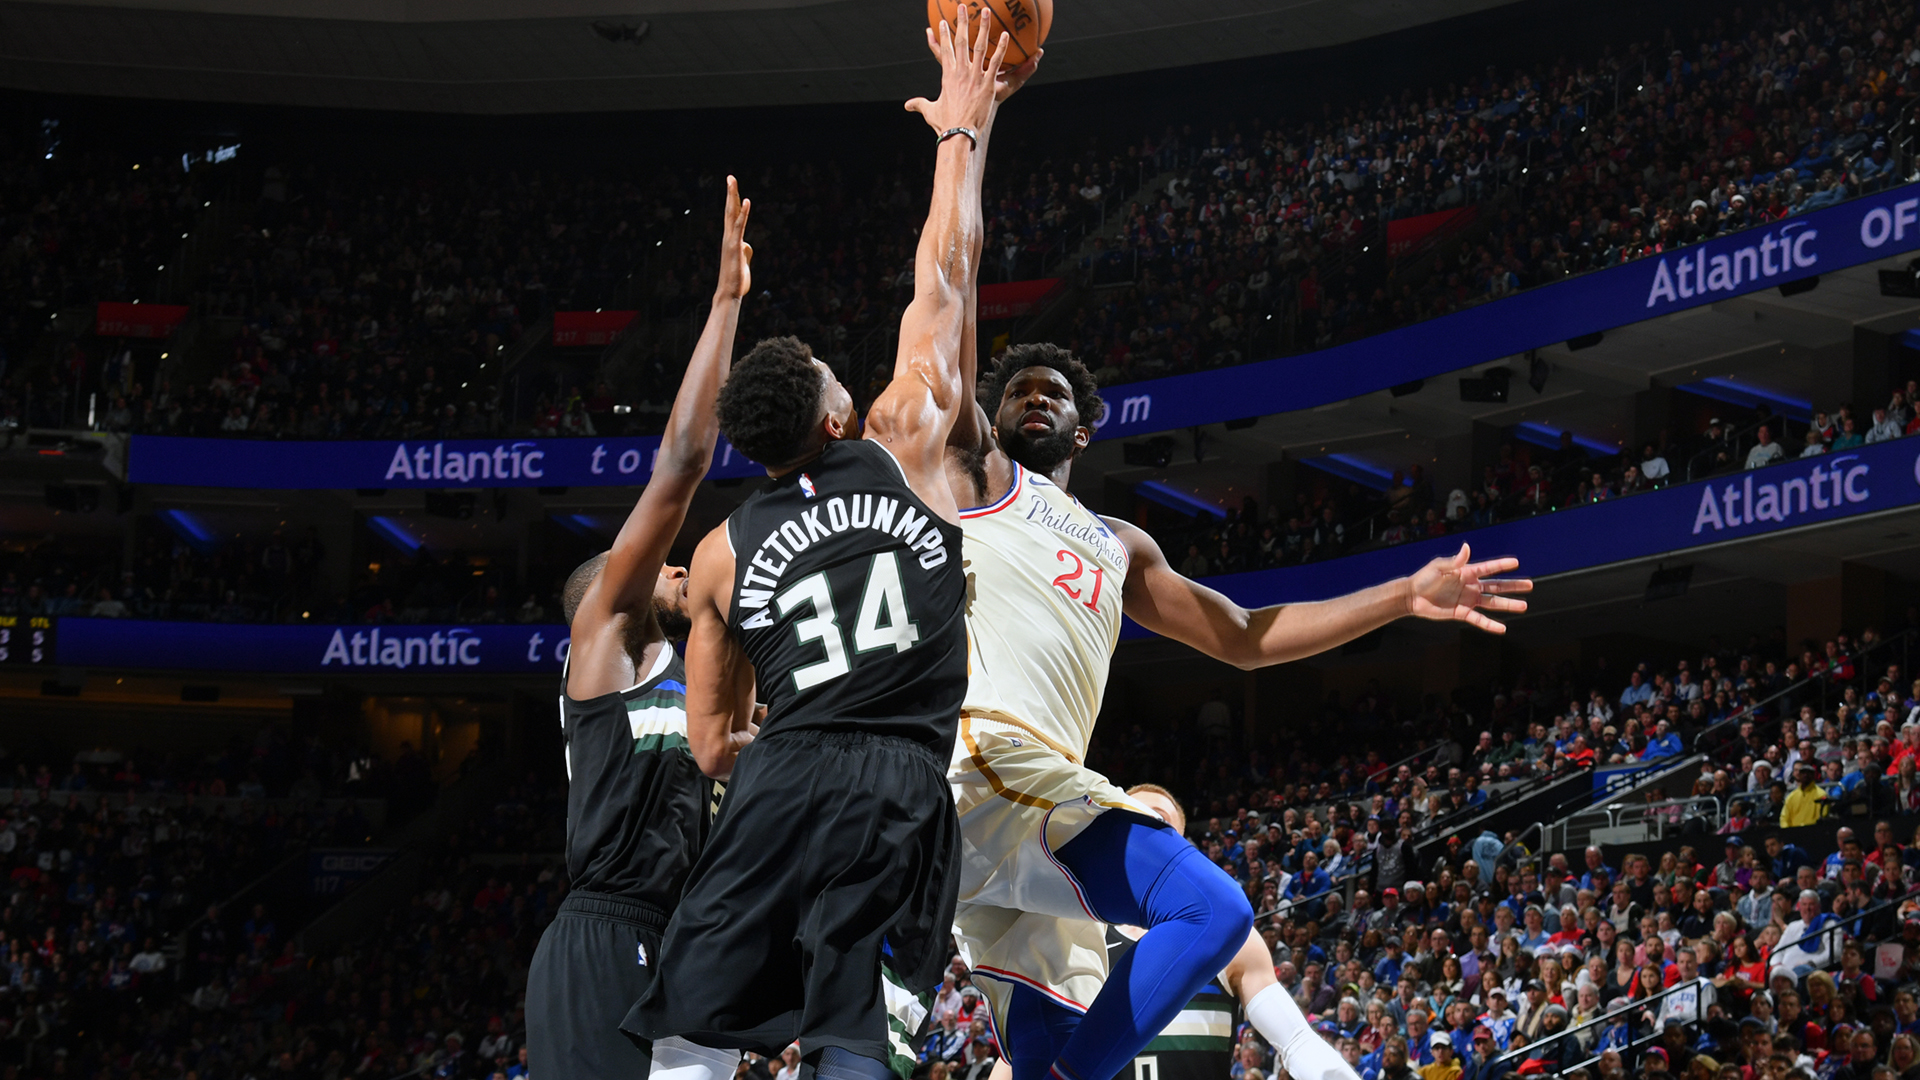 Sixers, Bucks both look to snap out of mini skids